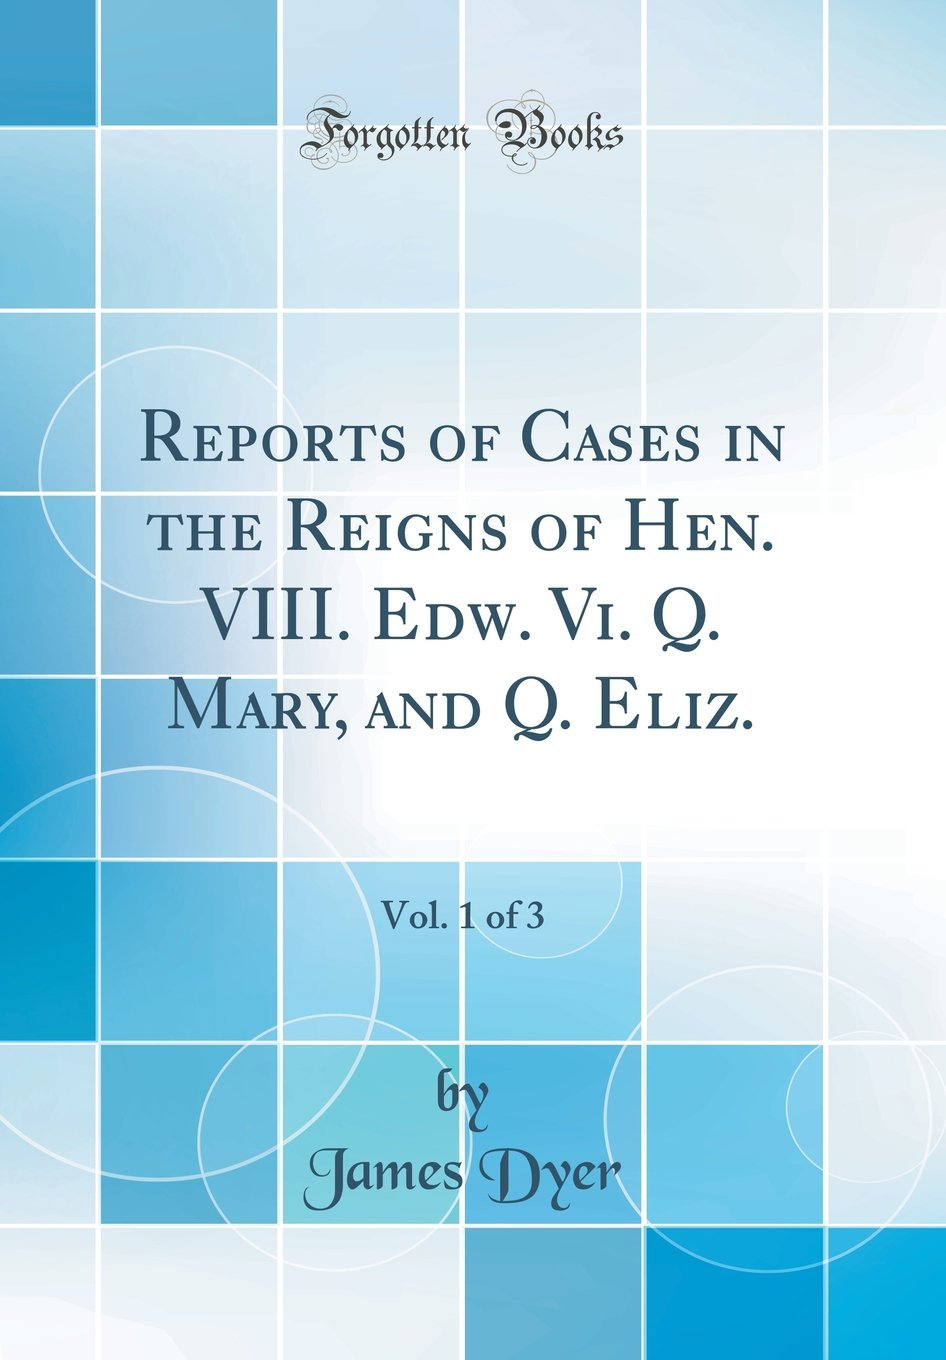 Reports of Cases in the Reigns of Hen. VIII. Edw. Vi. Q. Mary, and Q. Eliz., Vol. 1 of 3 (Classic Reprint) ebook